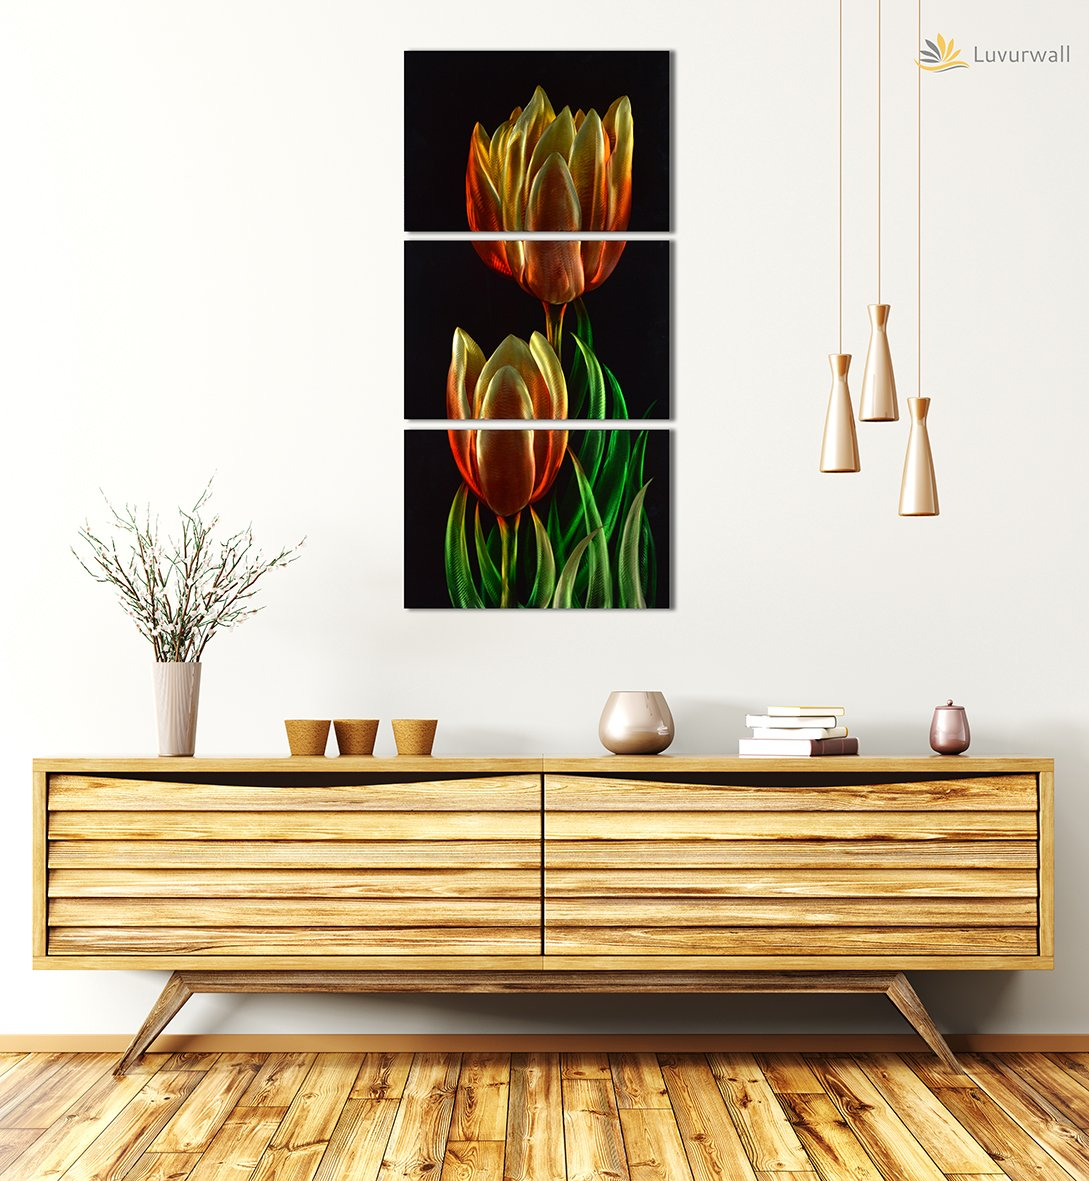 Luvurwall 3 Panel Tulips Metal Wall Art, Metal Wall Art - Luvurwall